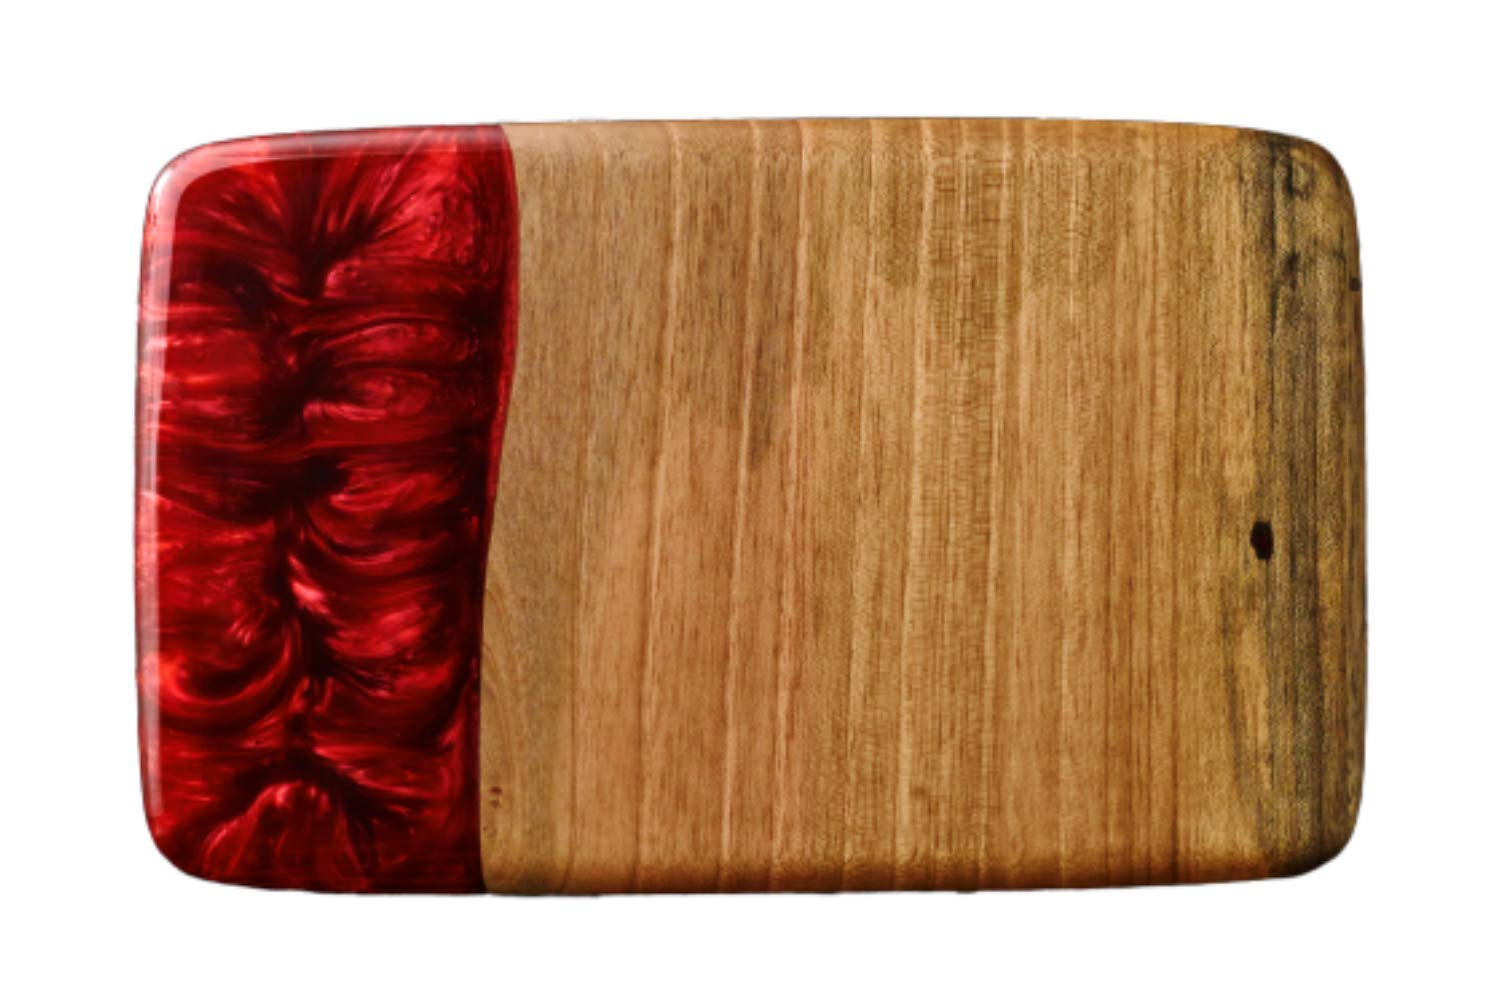 Luxury Handmade Resin Walnut Wooden Cutting Board Reversible Charcuterie And Cheese Board Multipurpose Serving Platter And